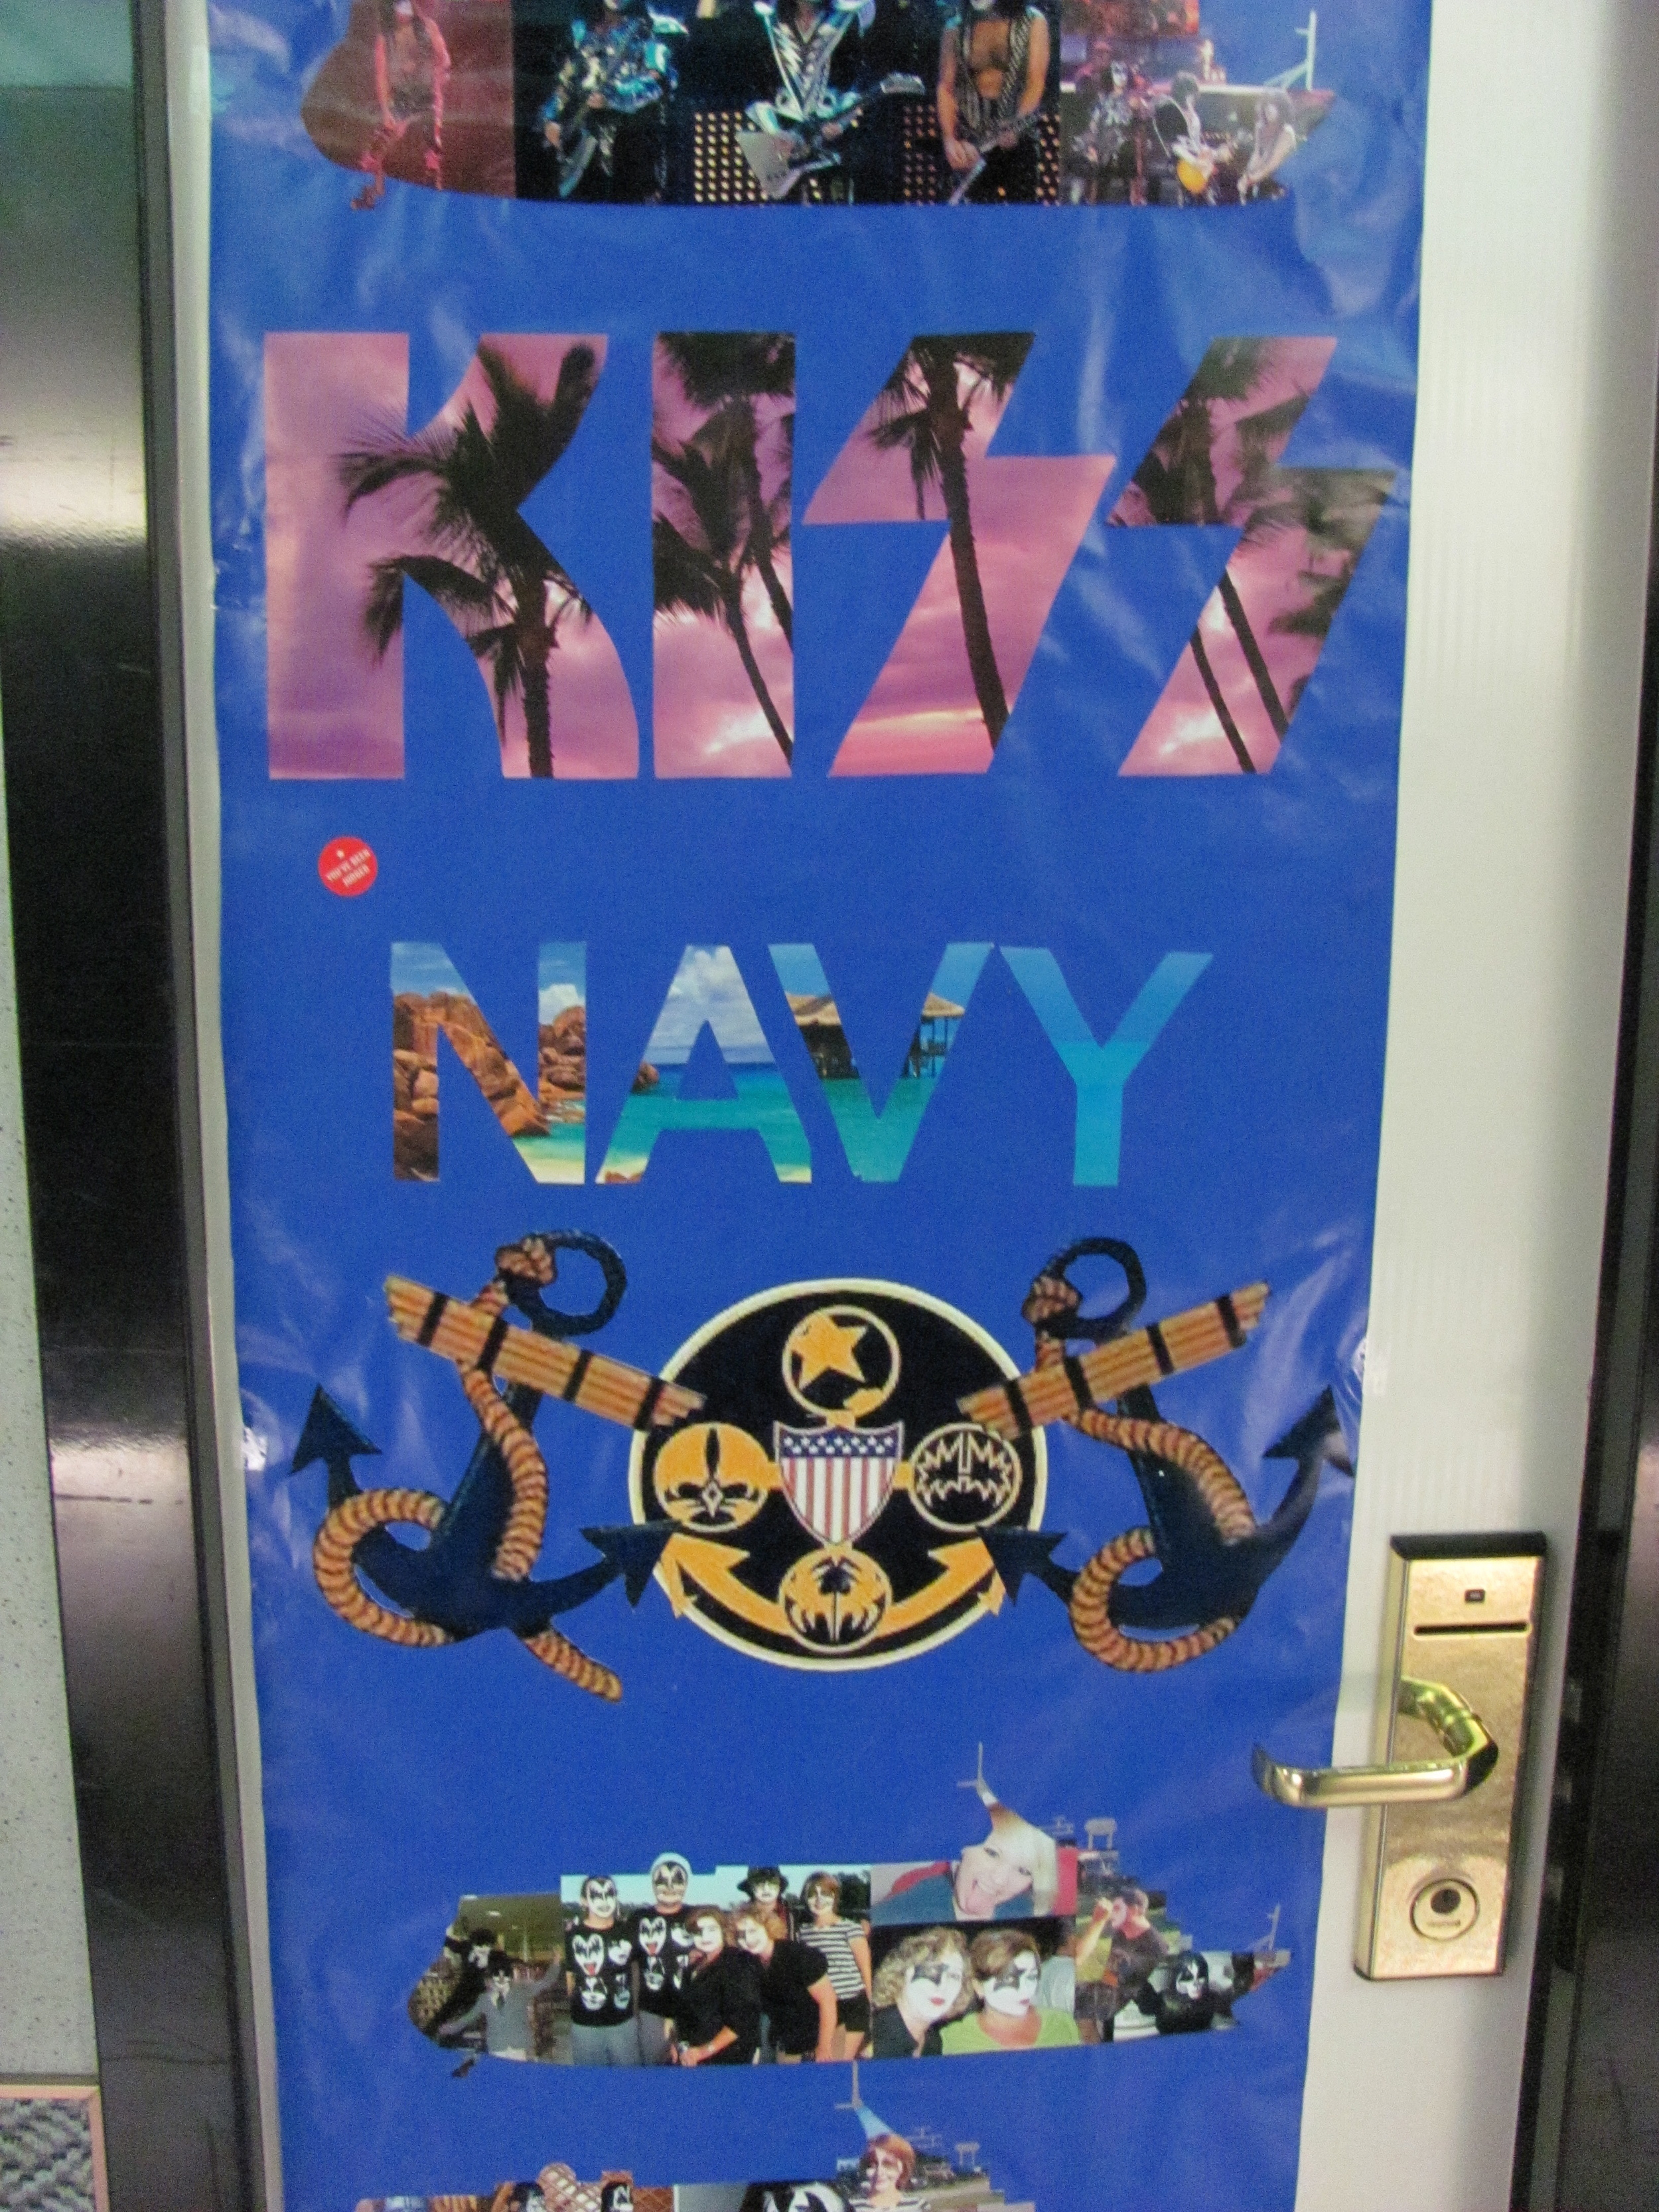 Fans often decorate their doors.